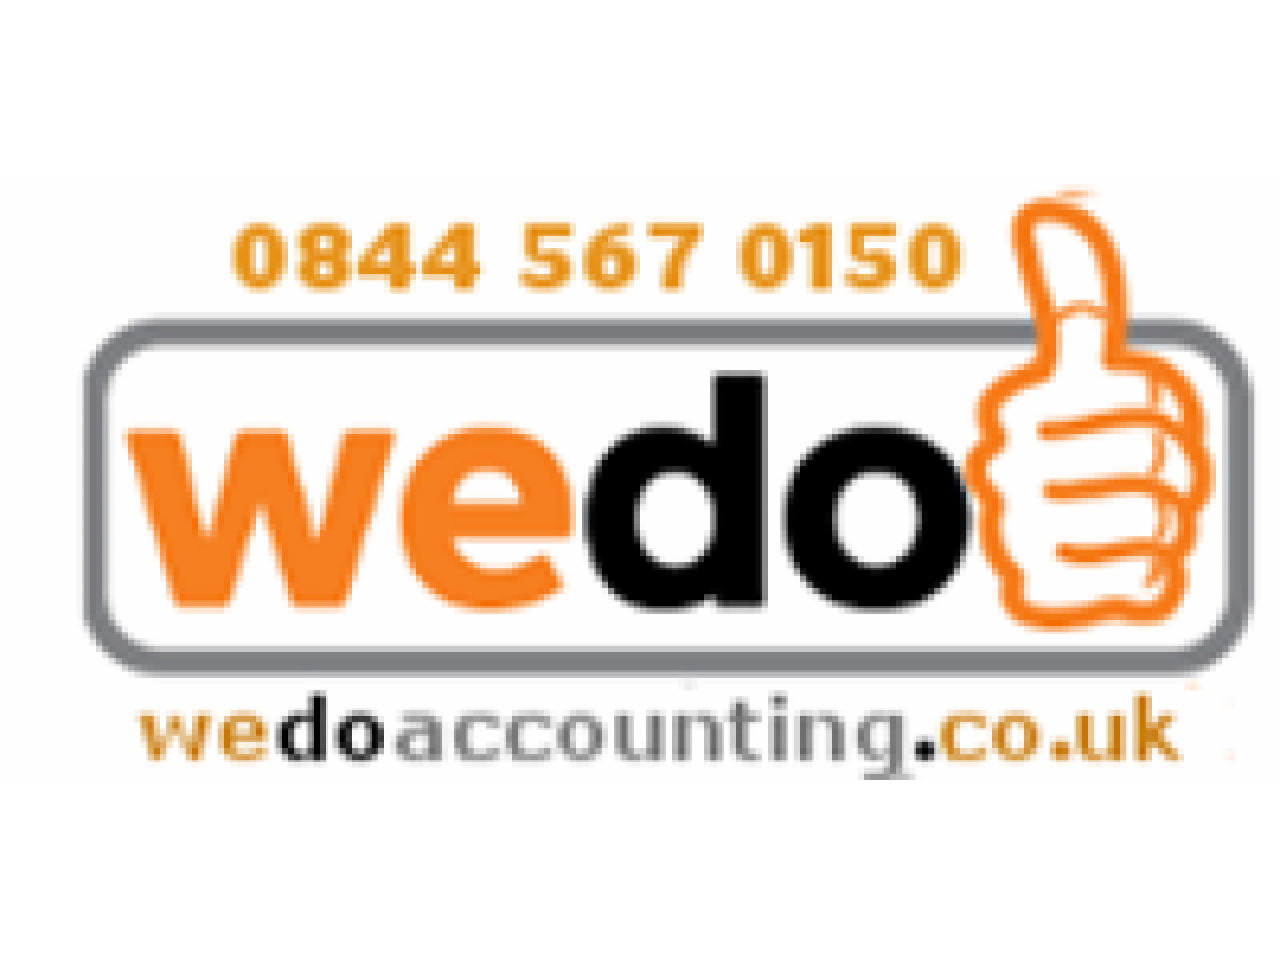 Accounting, Tax & Business Advice Services - 1